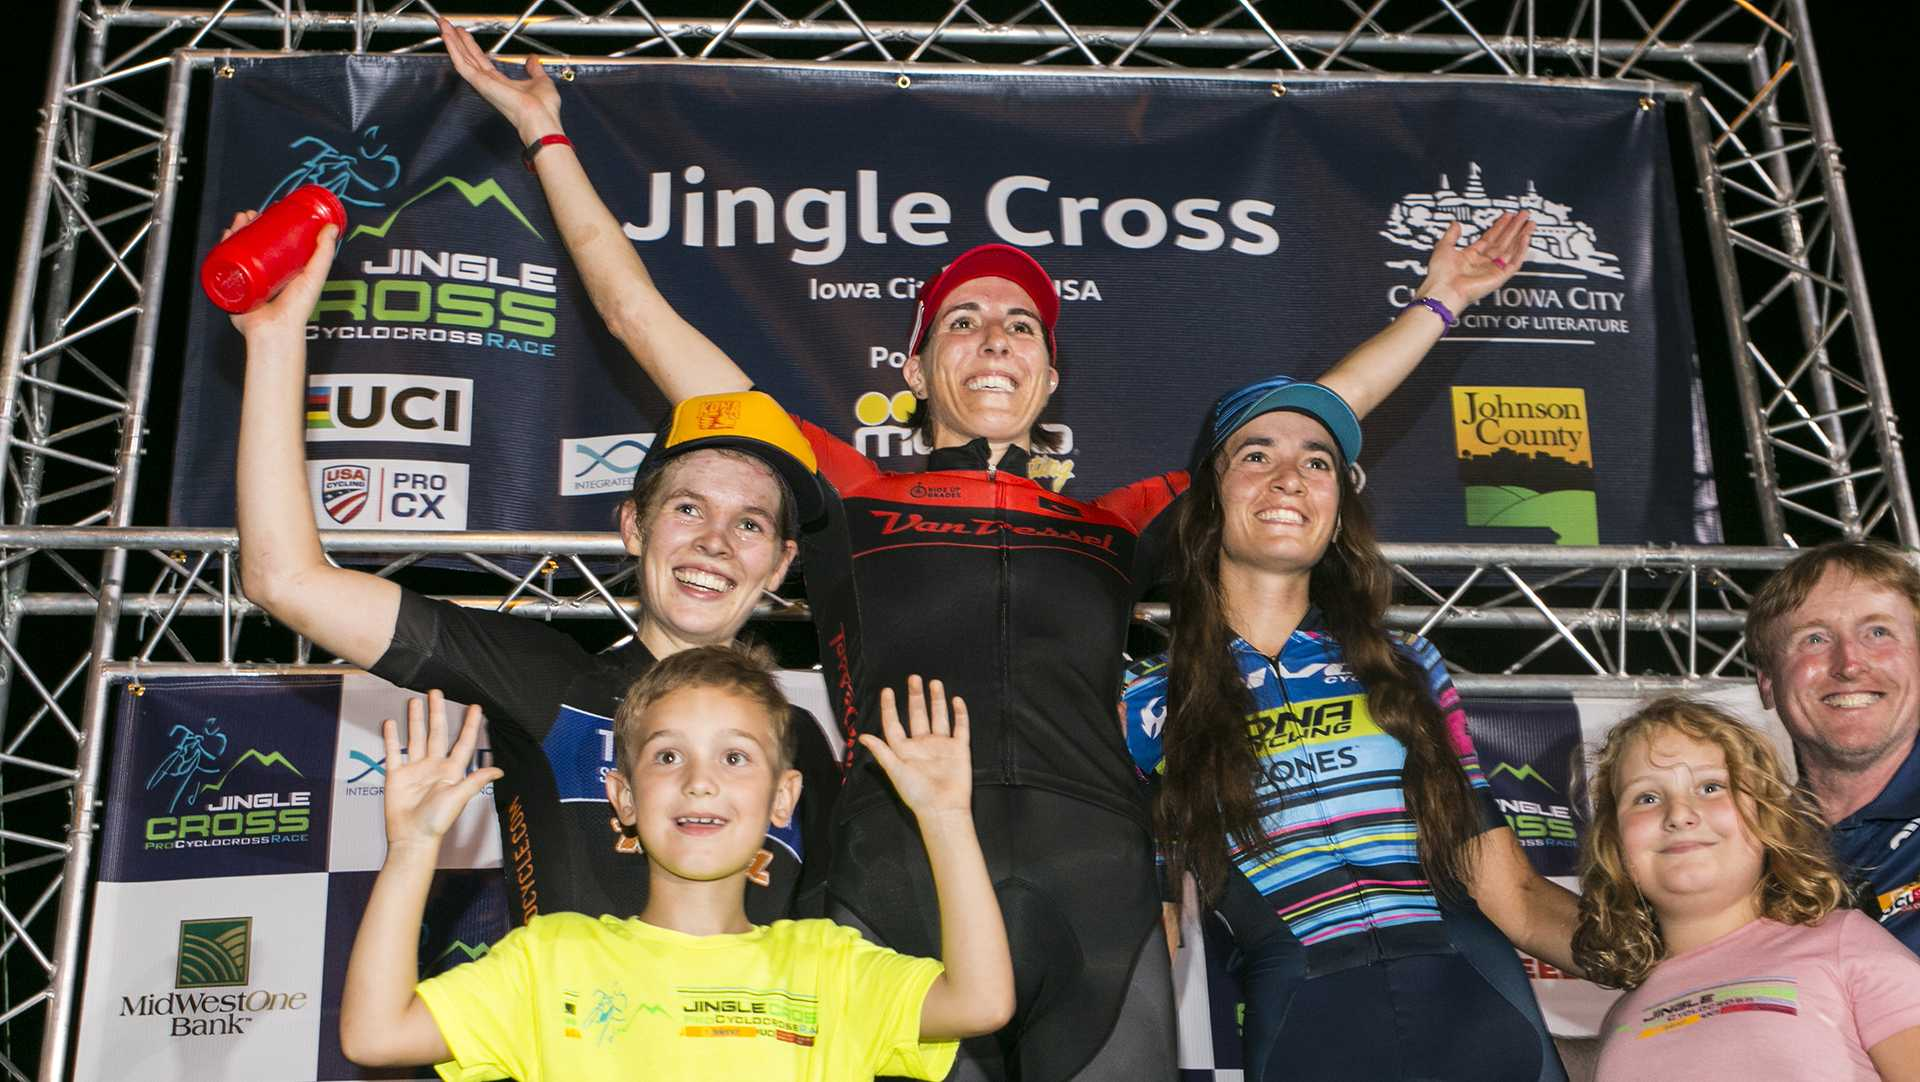 Team S&M CX's Clara Honsigner, left, Van Dessel Factory Team's Sunny Gilbert, center, and Sofia Gomez Villafane, right, stand on the podium after a cyclocross race at Jinglecross at the Johnson County fairgrounds on Saturday, Sept. 16, 2017. After both of the C2 races podium finishers had a symbolic wave to children in the Stead Family Children's Hospital. Saturday night featured C2 men's and women's UCI races, Sept. 17 will host the UCI Telenet World Cup. (Joseph Cress/The Daily Iowan)